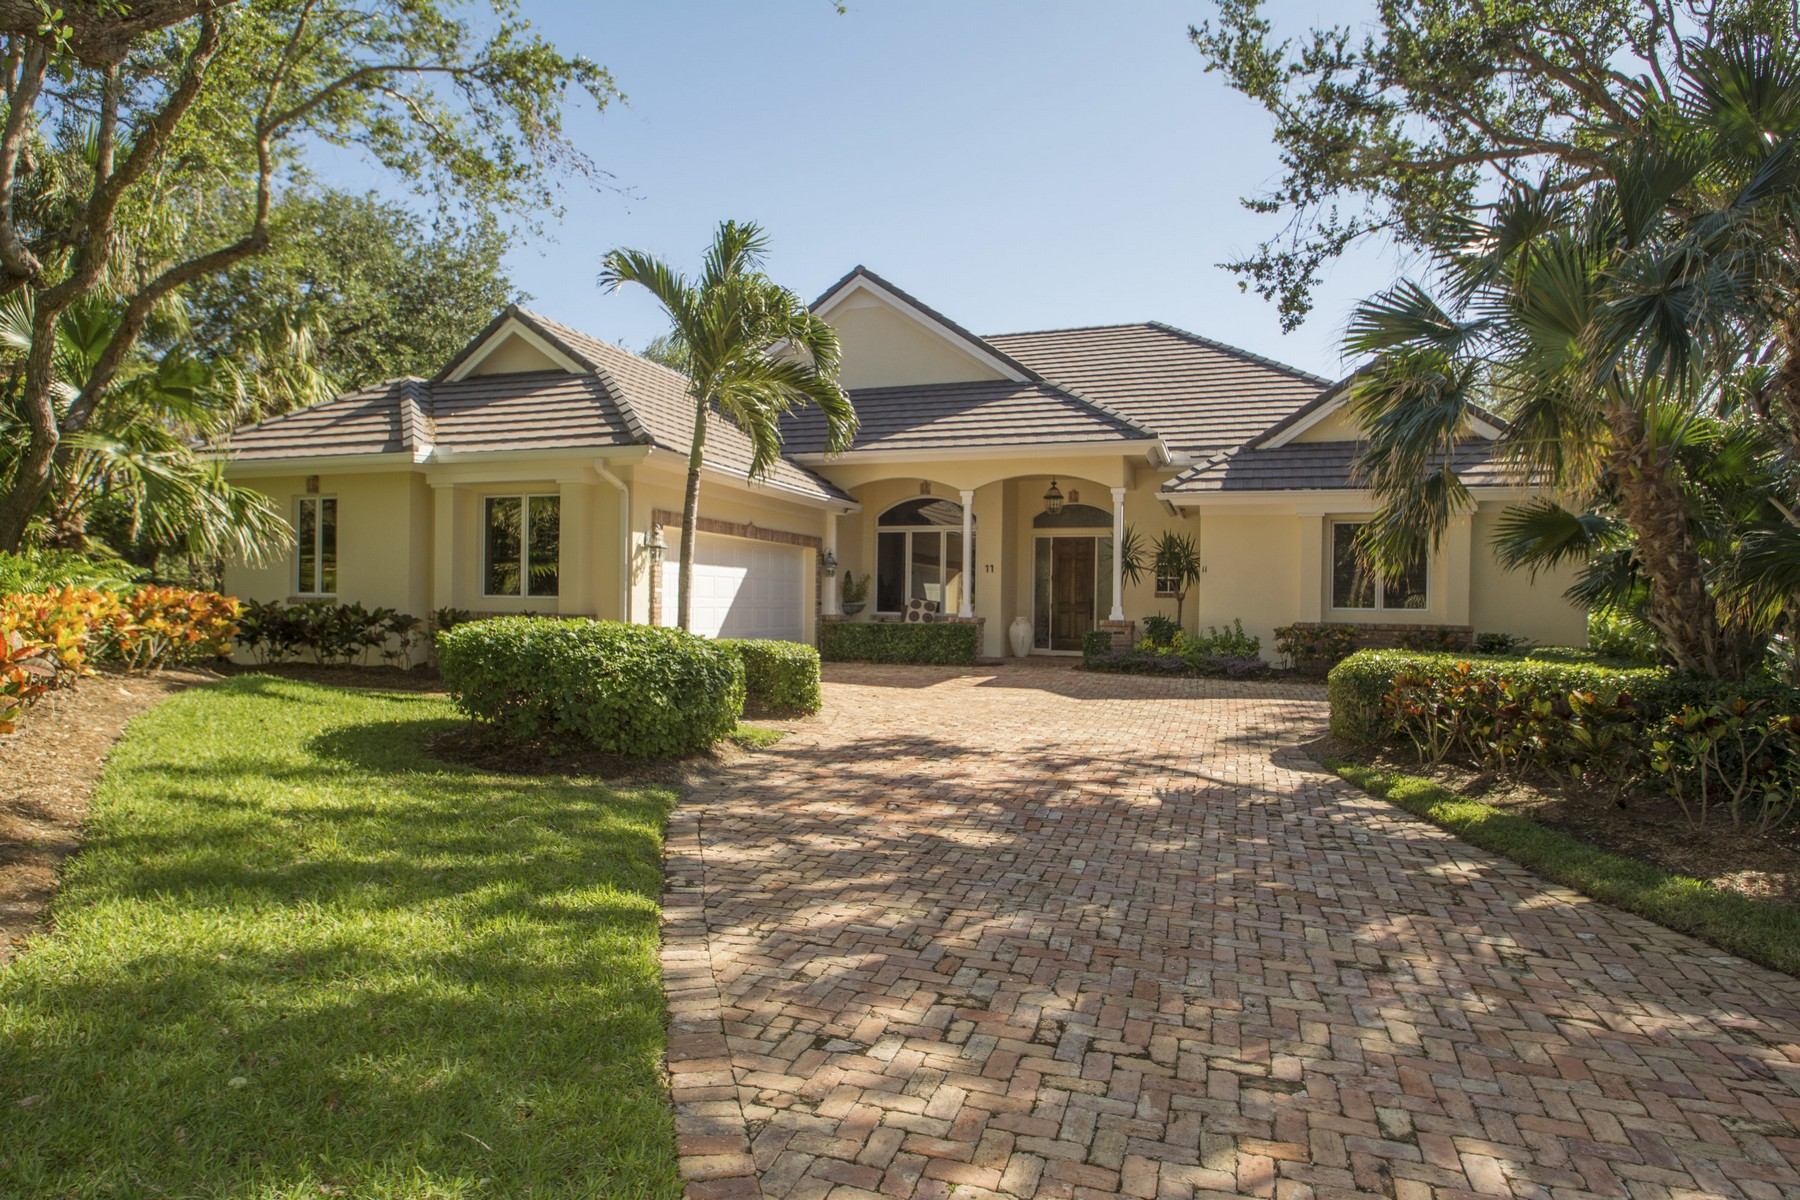 single family homes for Sale at Magnificent Home with Exquisite Landscaping 11 S. White Jewel Court Indian River Shores, Florida 32963 United States